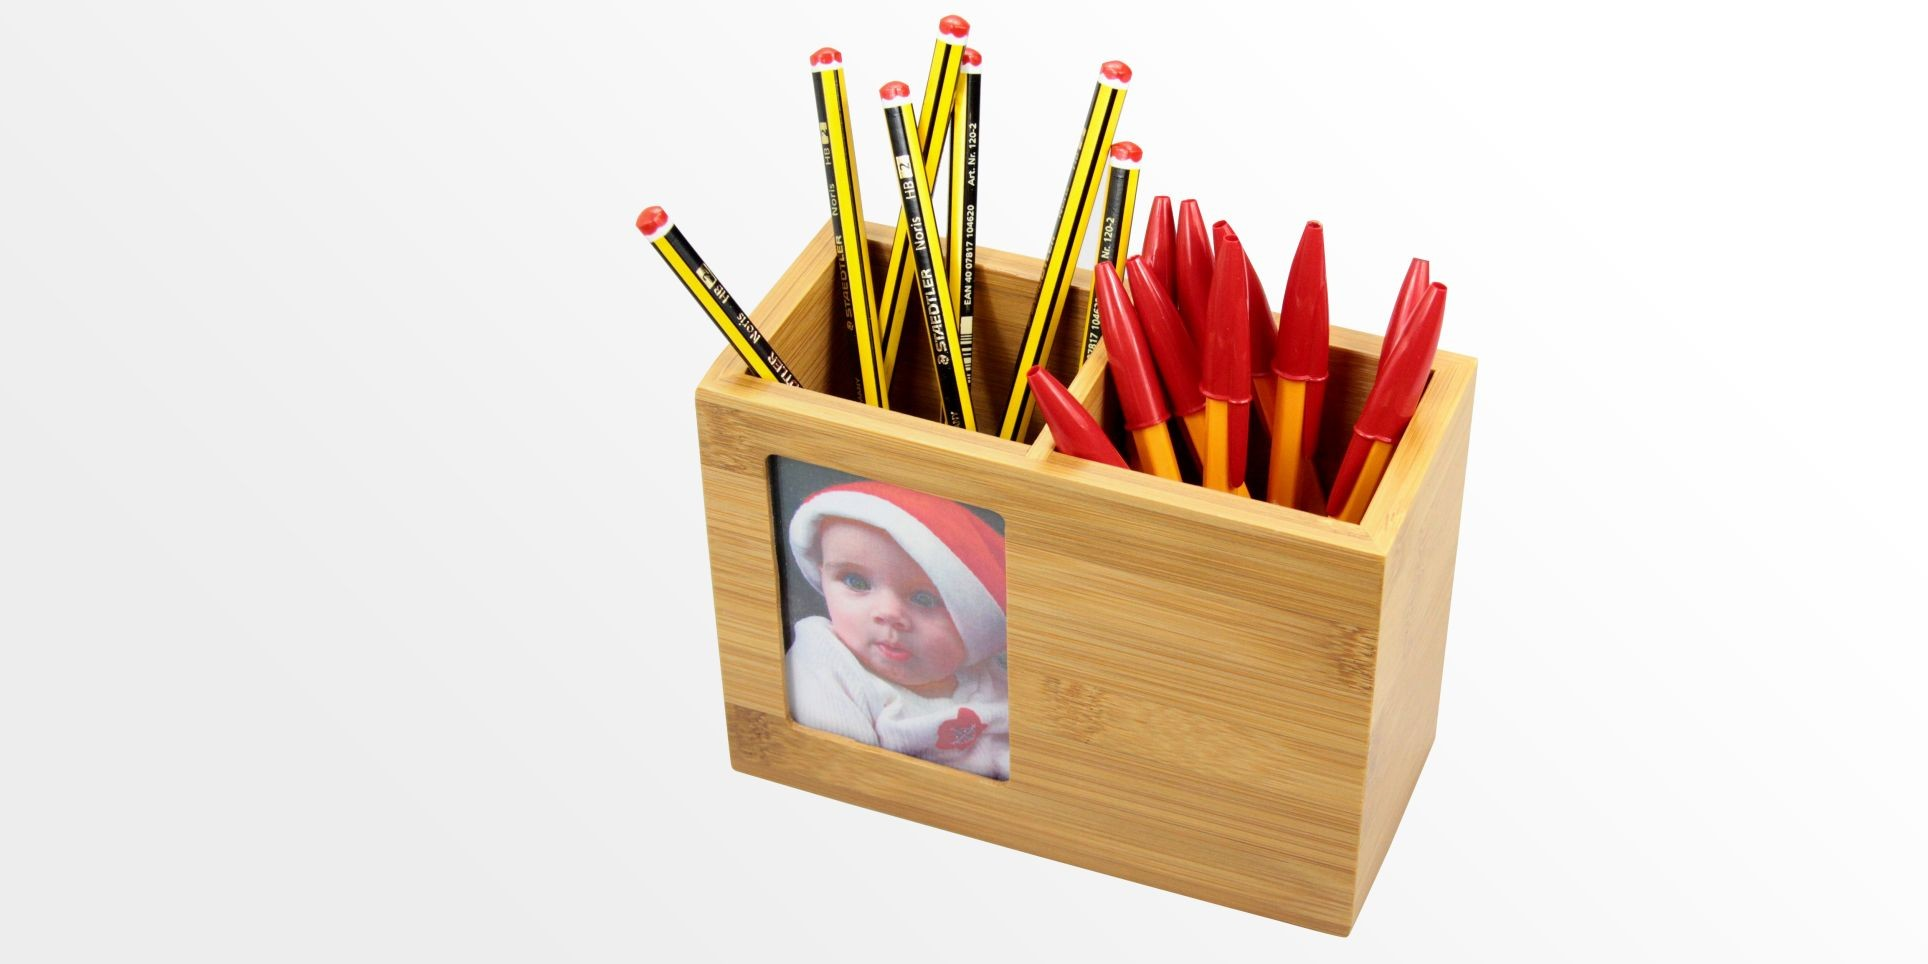 Bamboo Pen Holder with Photo